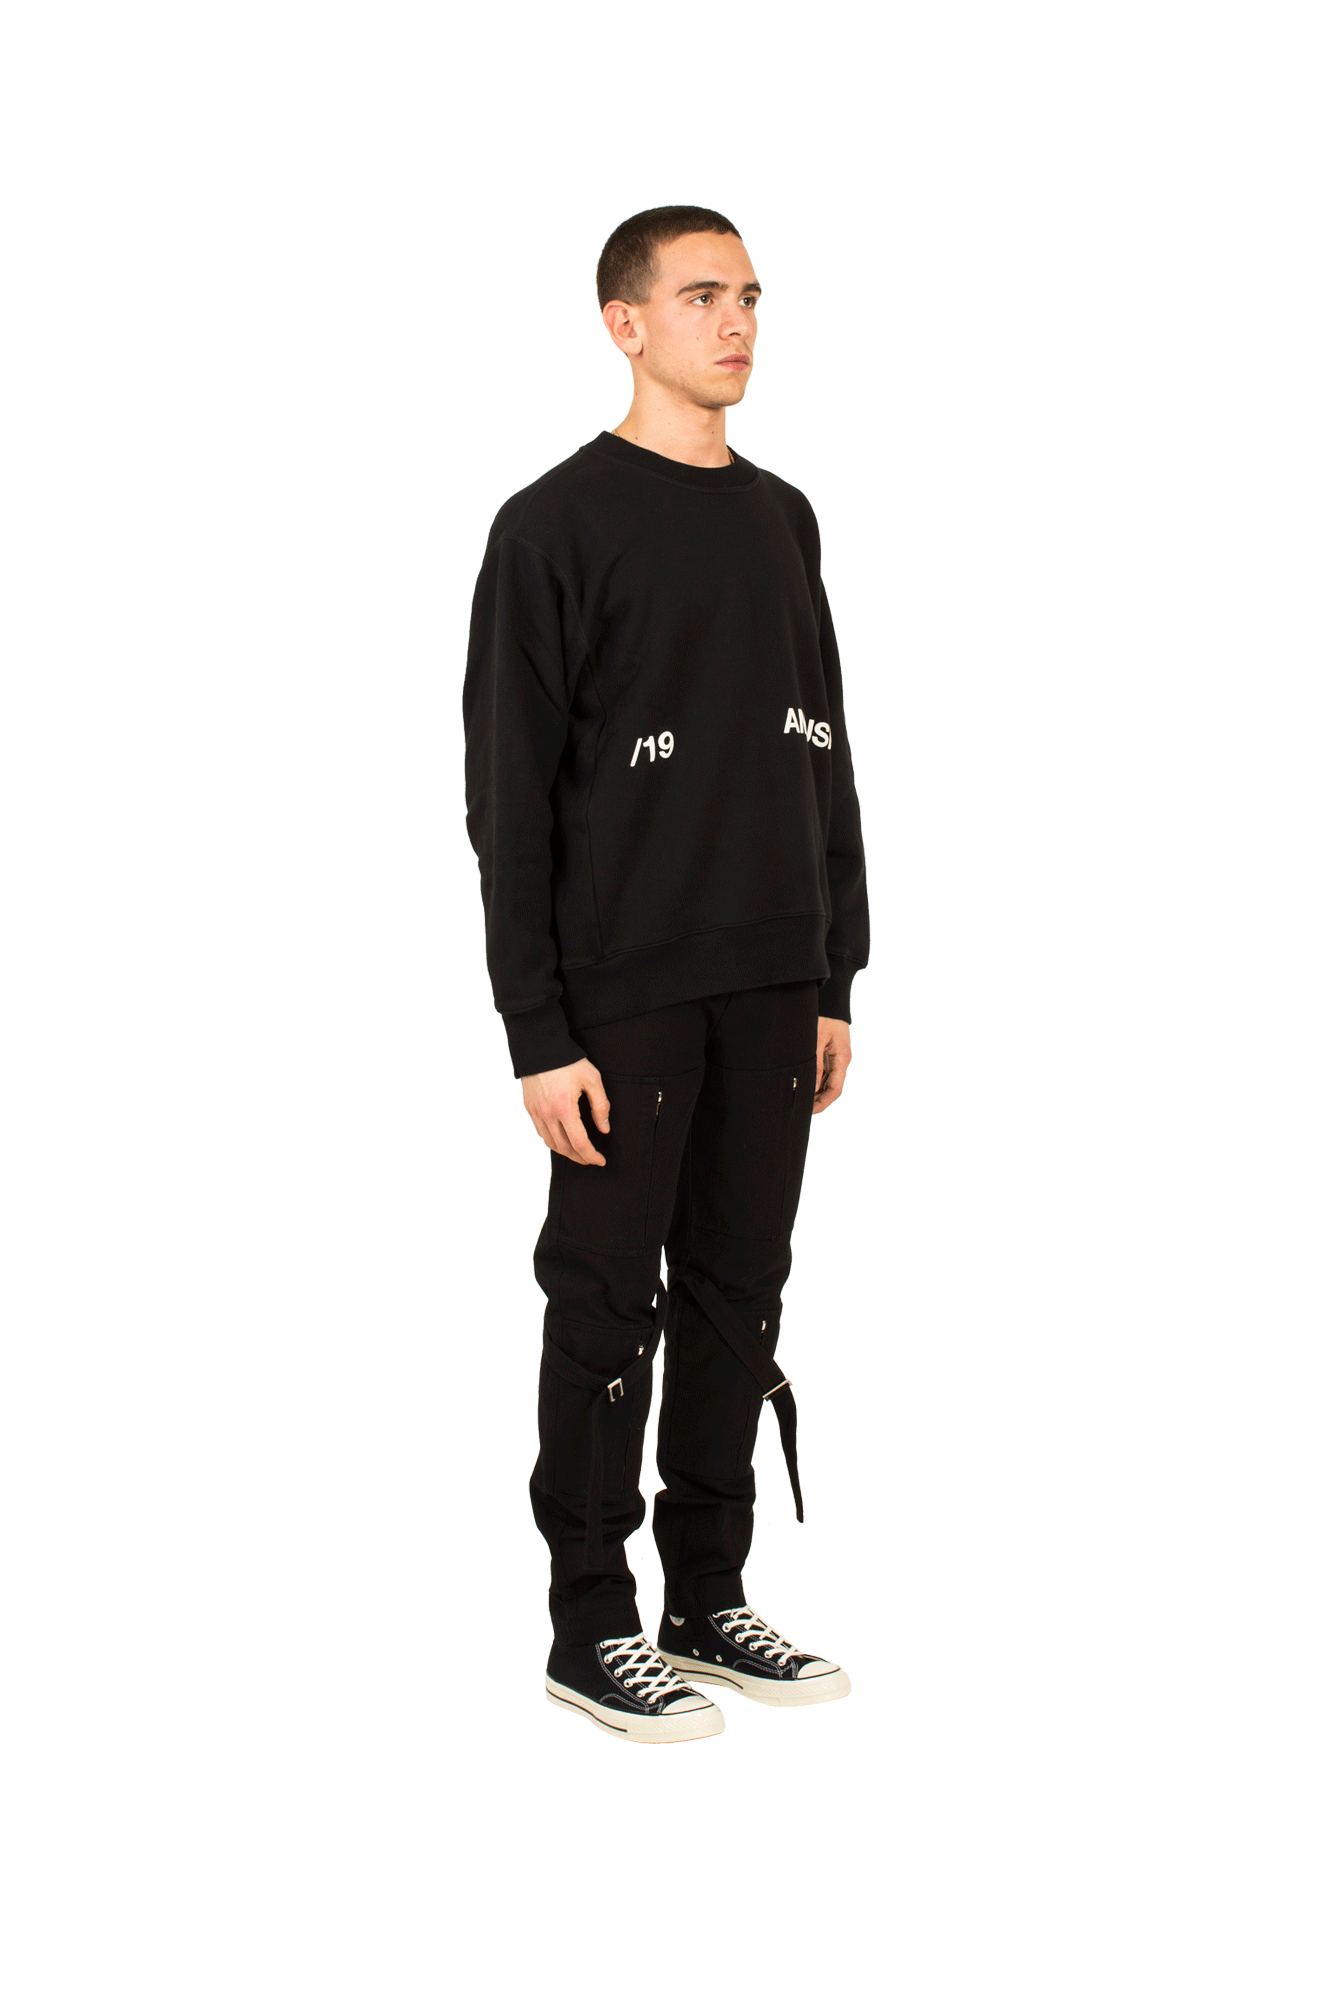 Ambush Camicie AW19 Crewneck Sweat Shirt Nero 12111841#000#BLK#1 - One Block Down